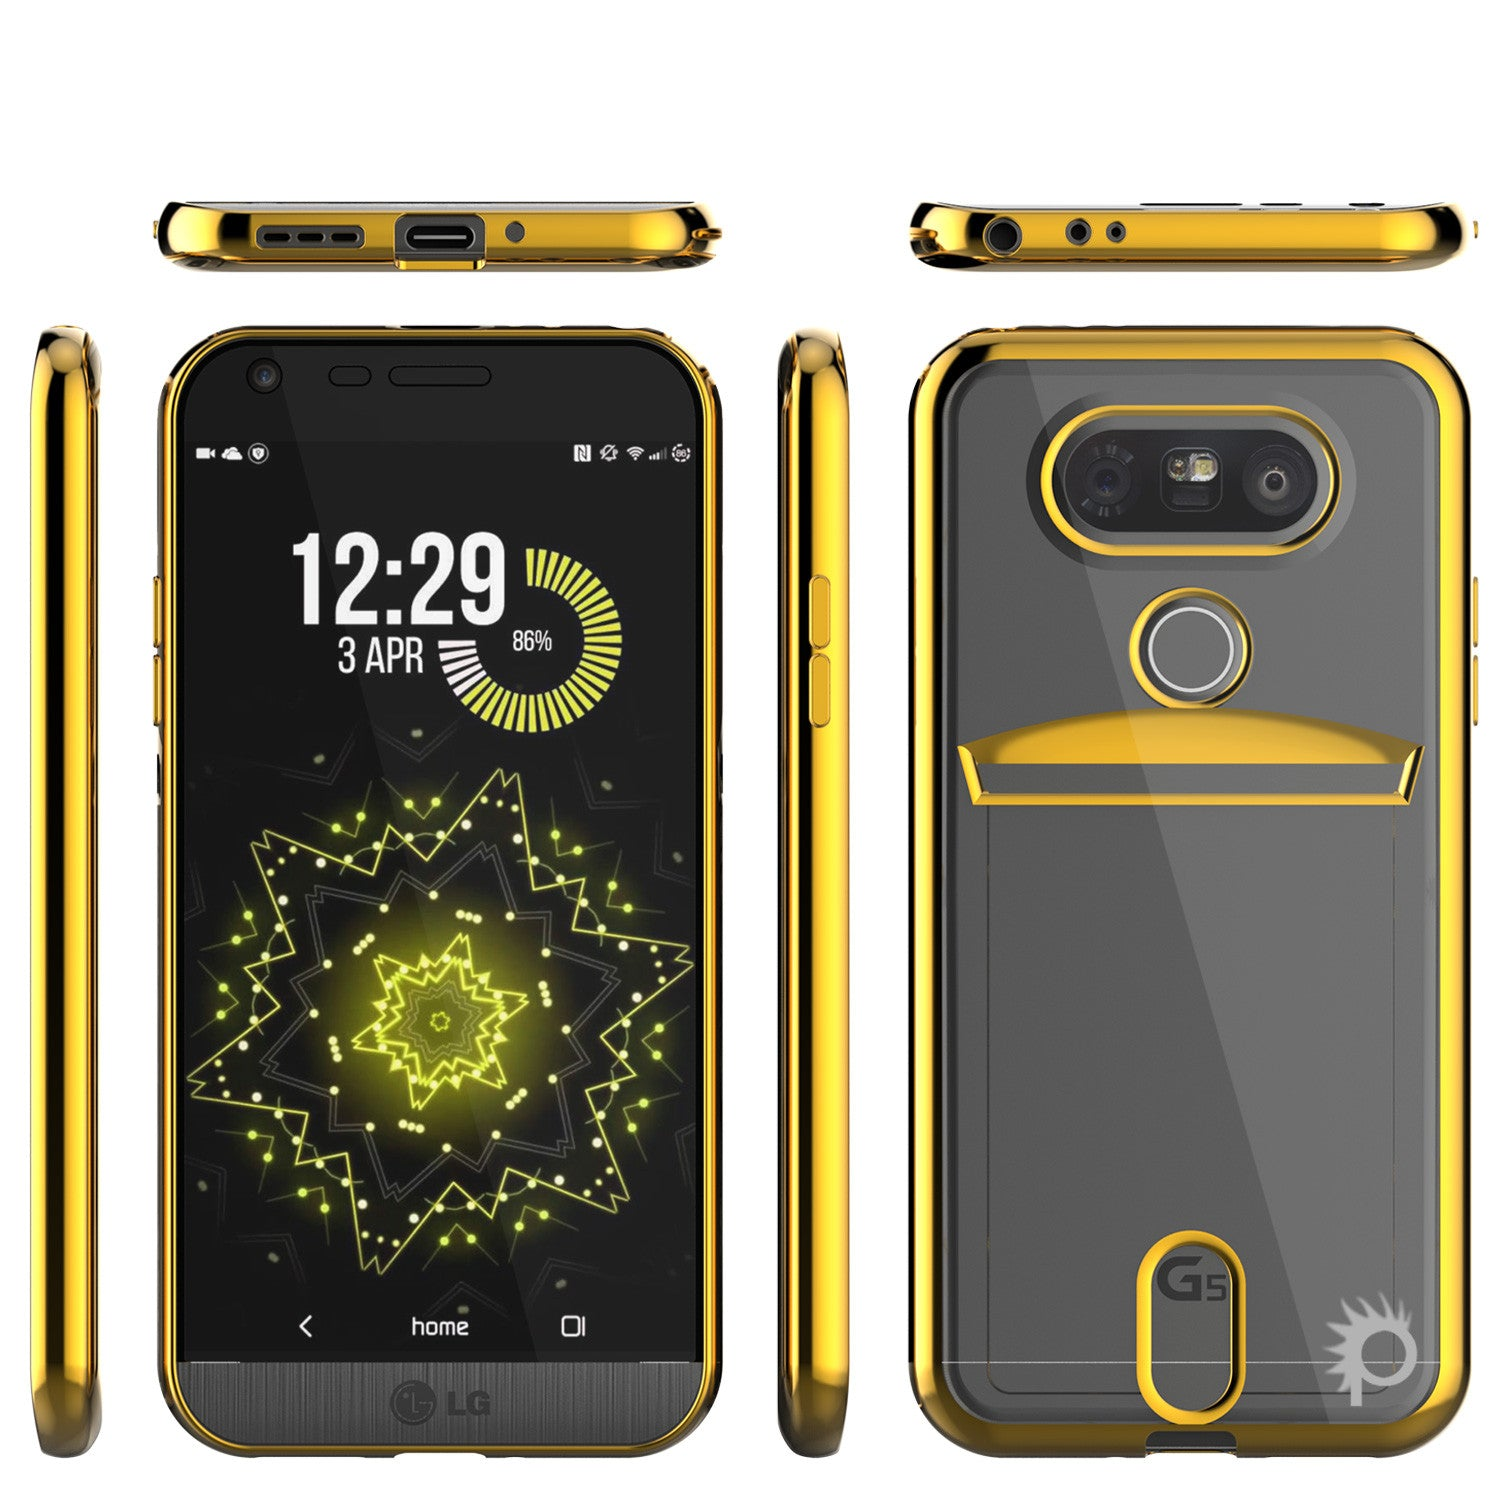 LG G5 Case, PUNKCASE® Gold LUCID Series | Card Slot | PUNK SHIELD Screen Protector | Ultra Fit